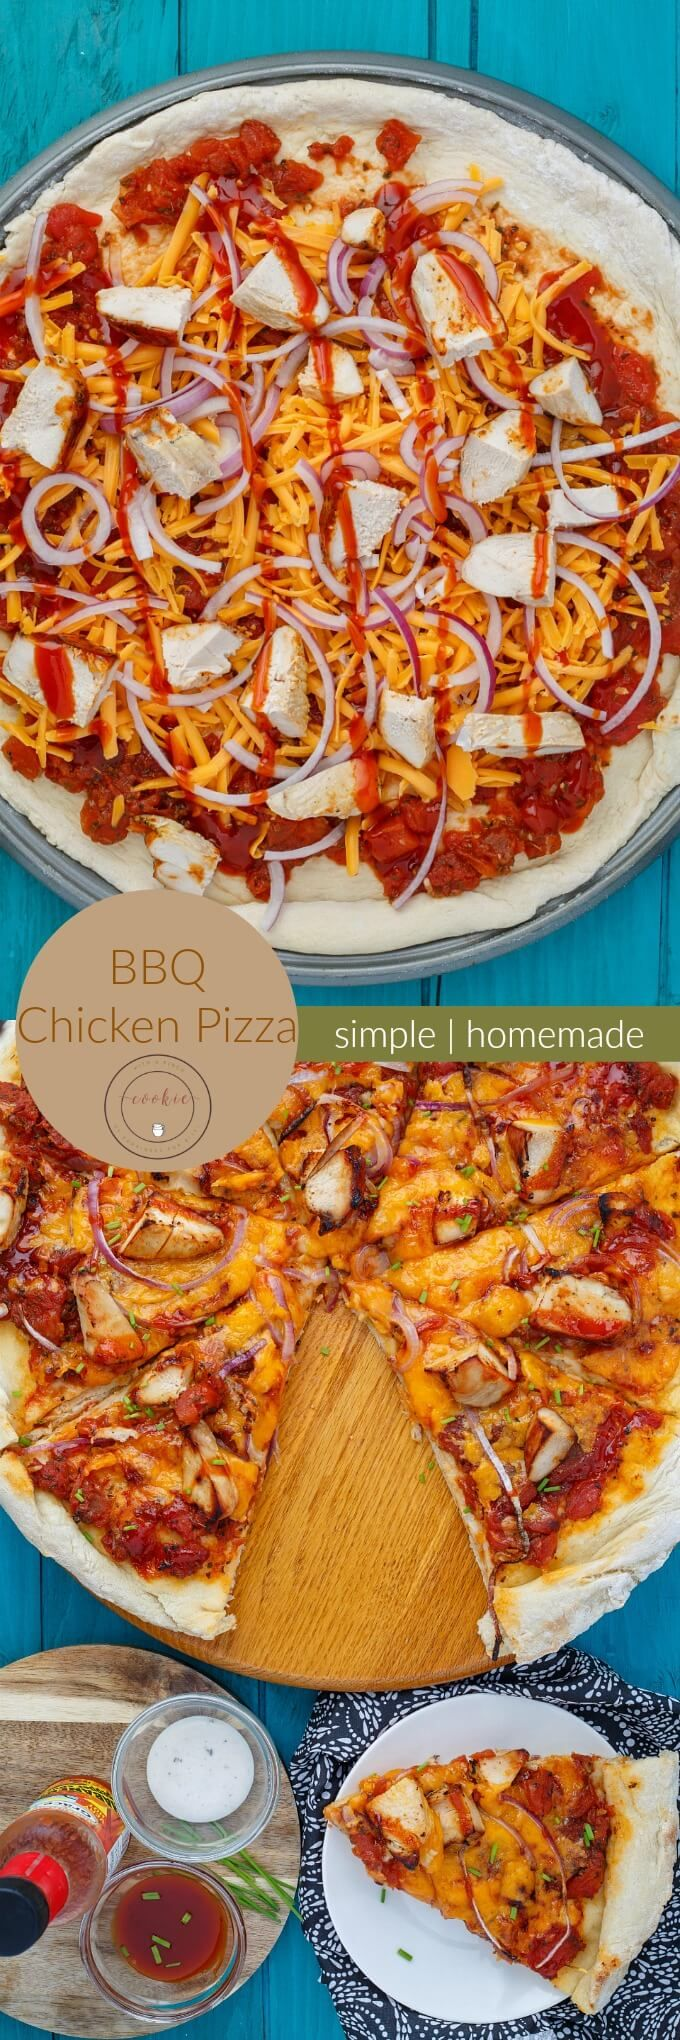 BBQ Chicken Pizza with Mushrooms and Onions | http://thecookiewriter.com | #pizza #chicken #homemade